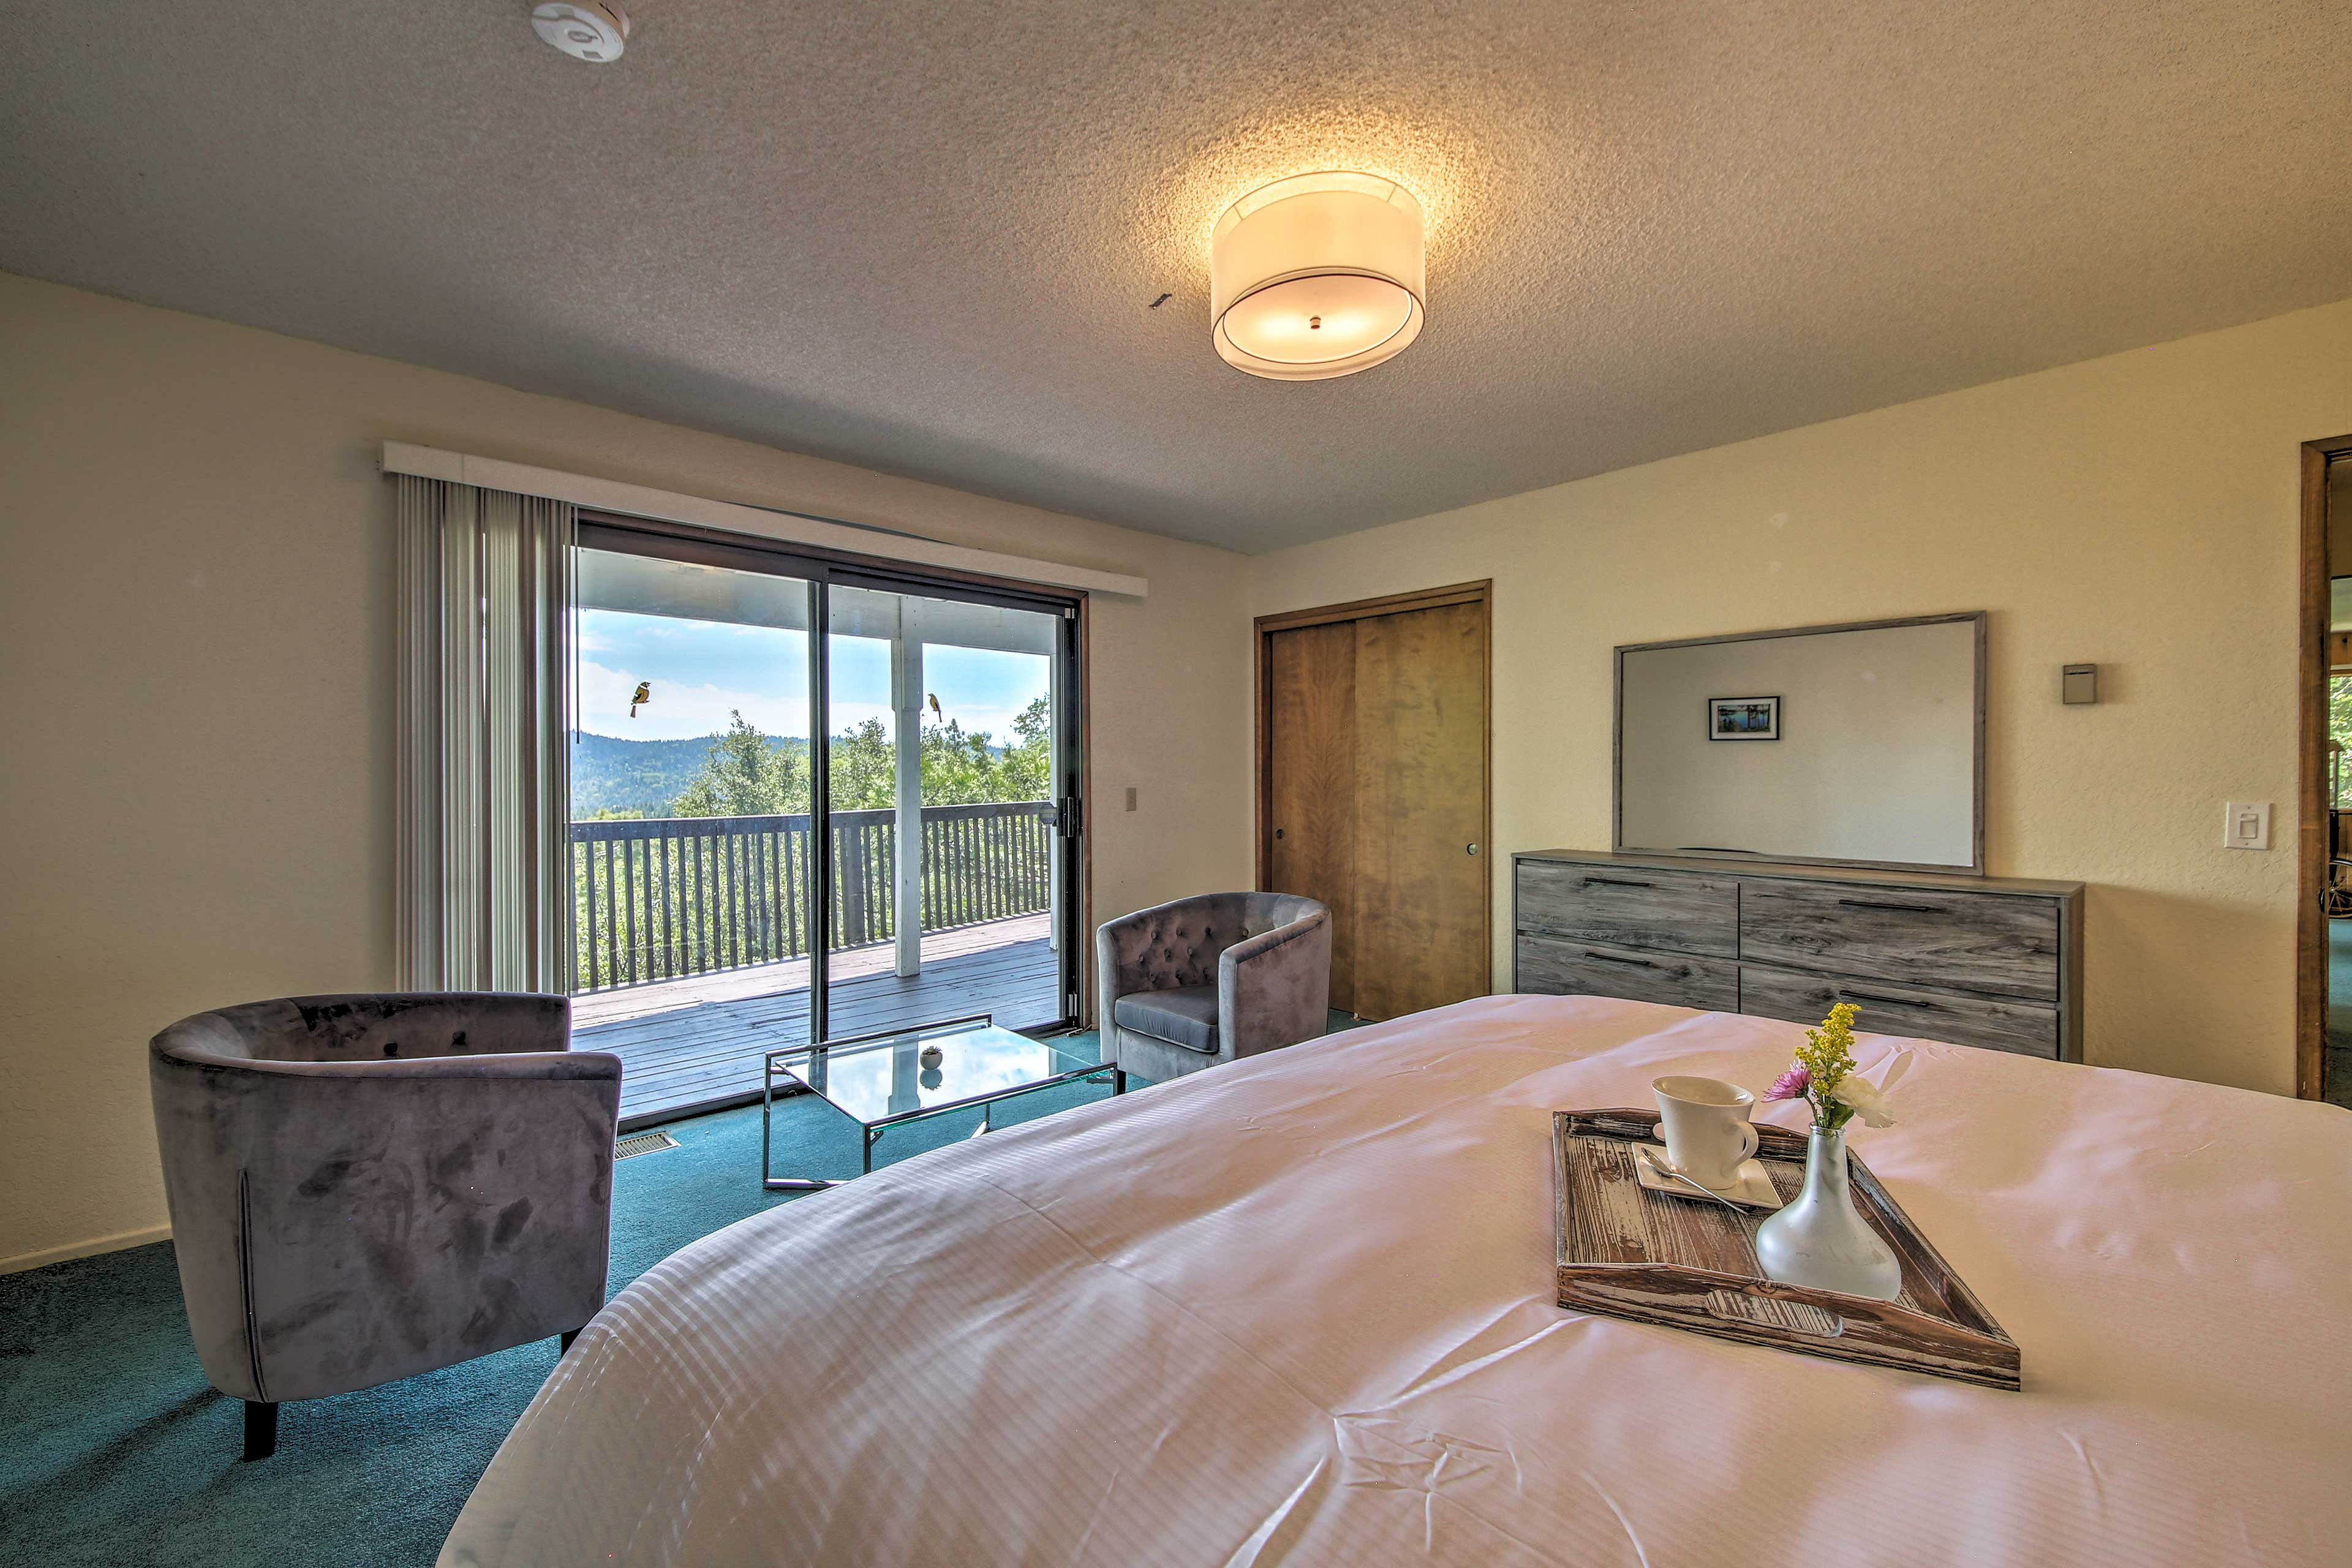 Wake up to views of the landscape each morning from your king-sized bed.